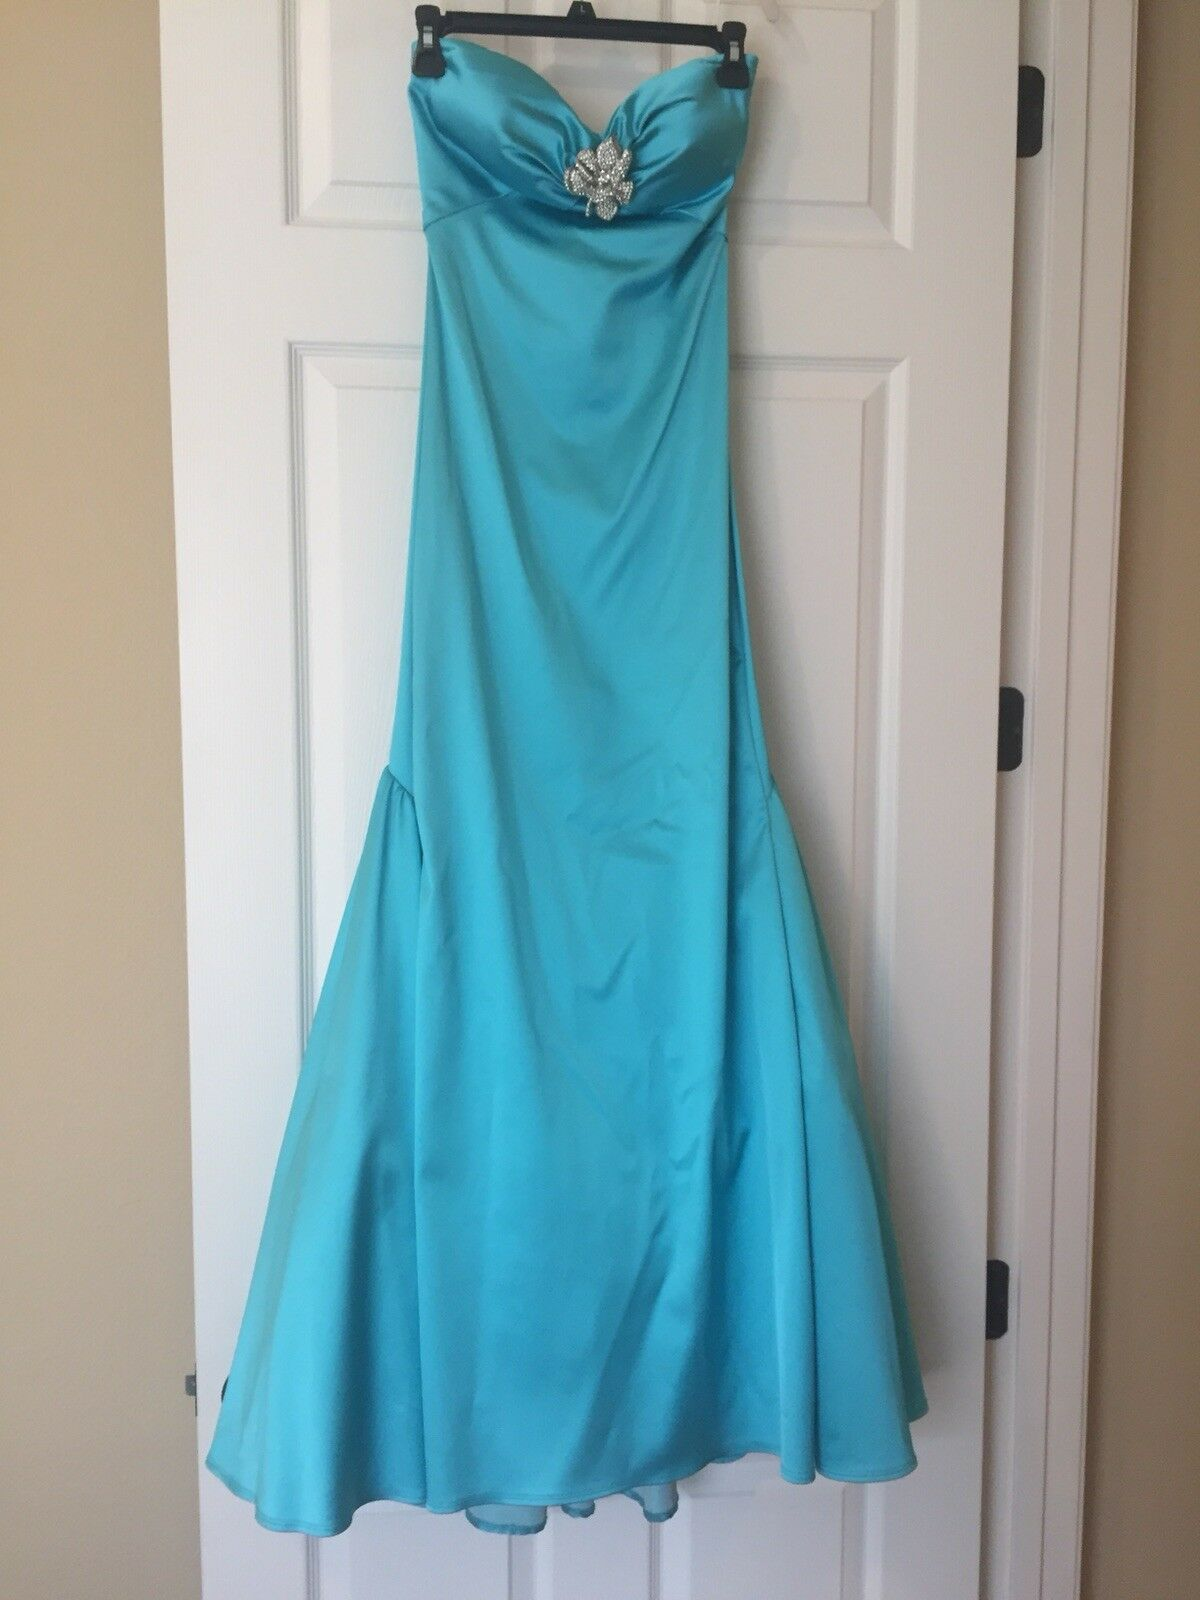 NWOT size XS Nicole Bakti Turquoise Strapless gown w/ floral rhinestone broach